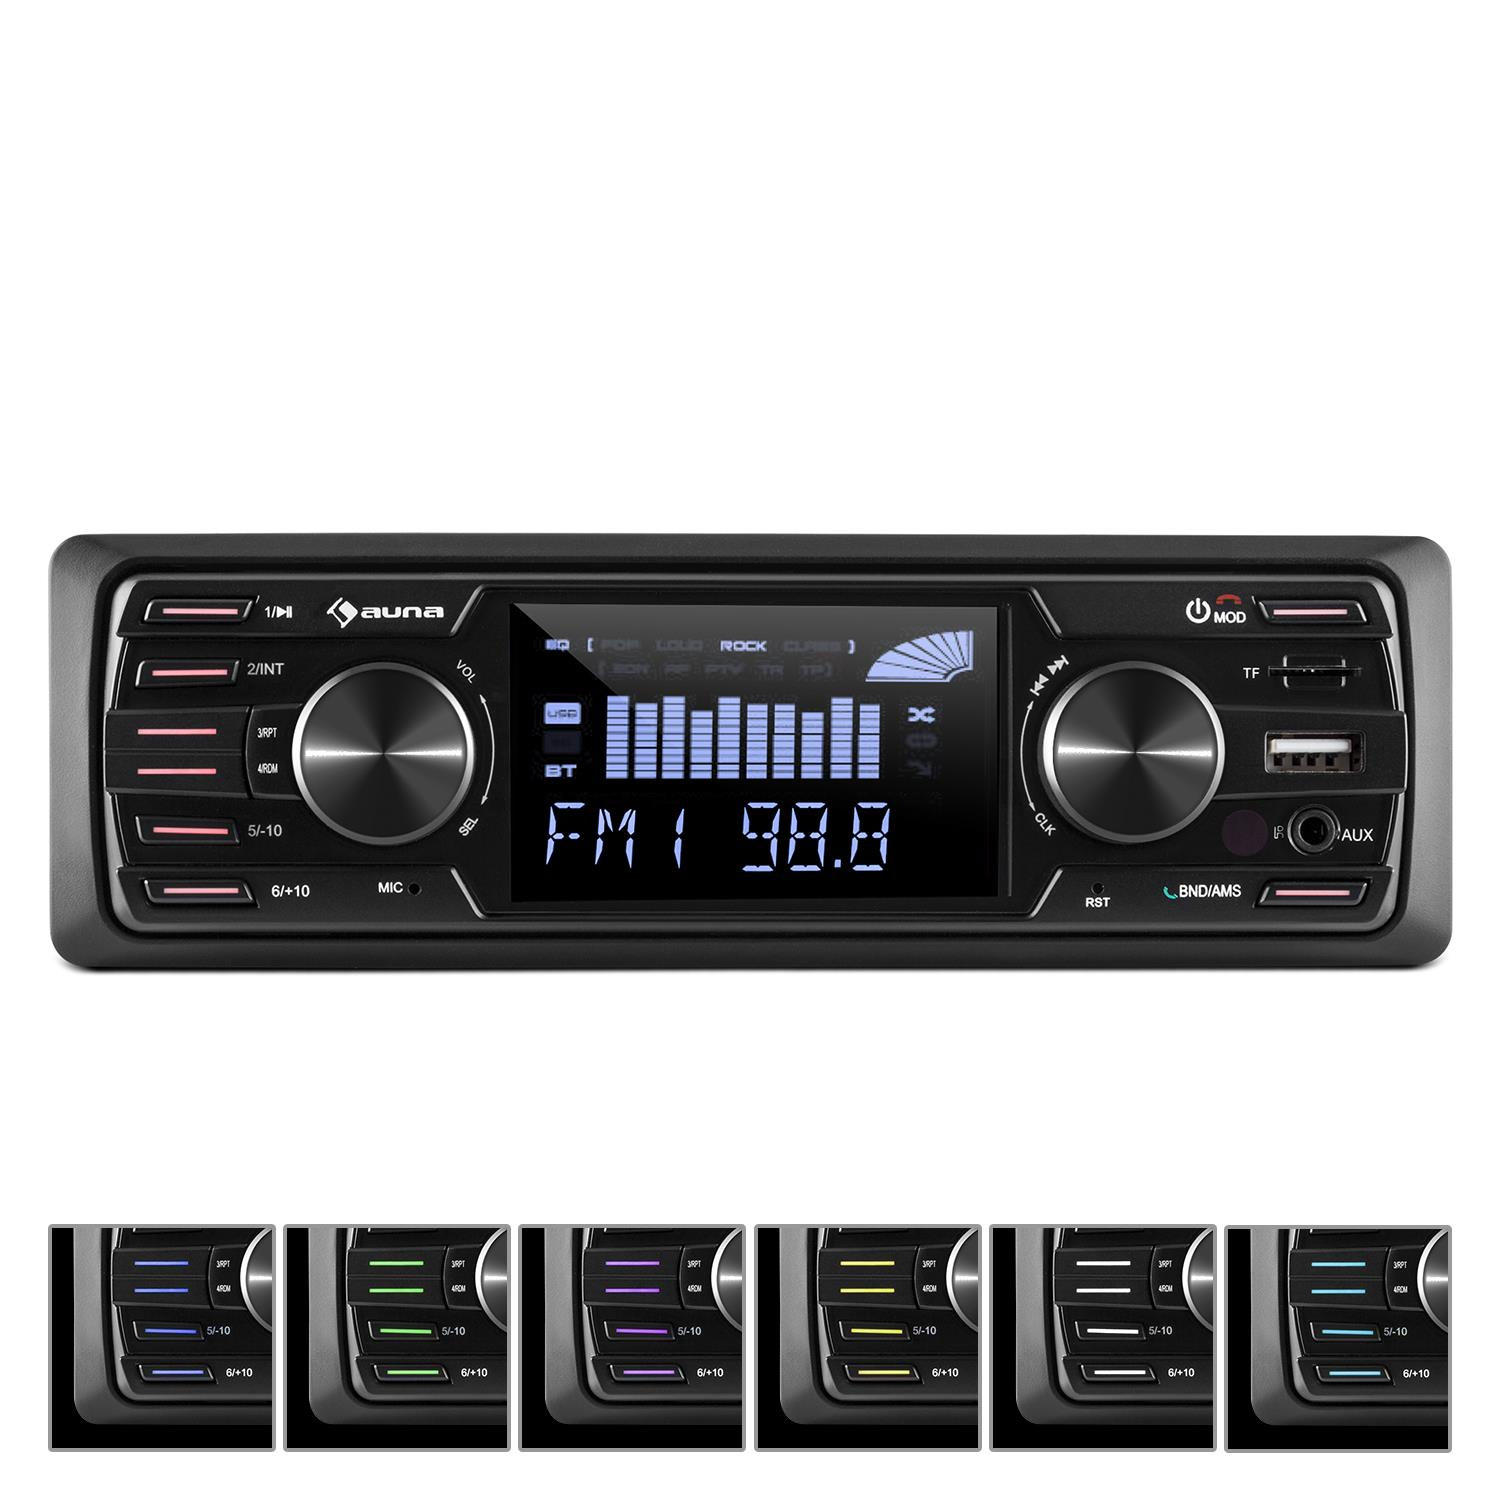 Autoradio-Bluetooth-Stereo-Auto-Radio-Tuner-VHF-MP3-Ingresso-AUX-USB-Display-LCD